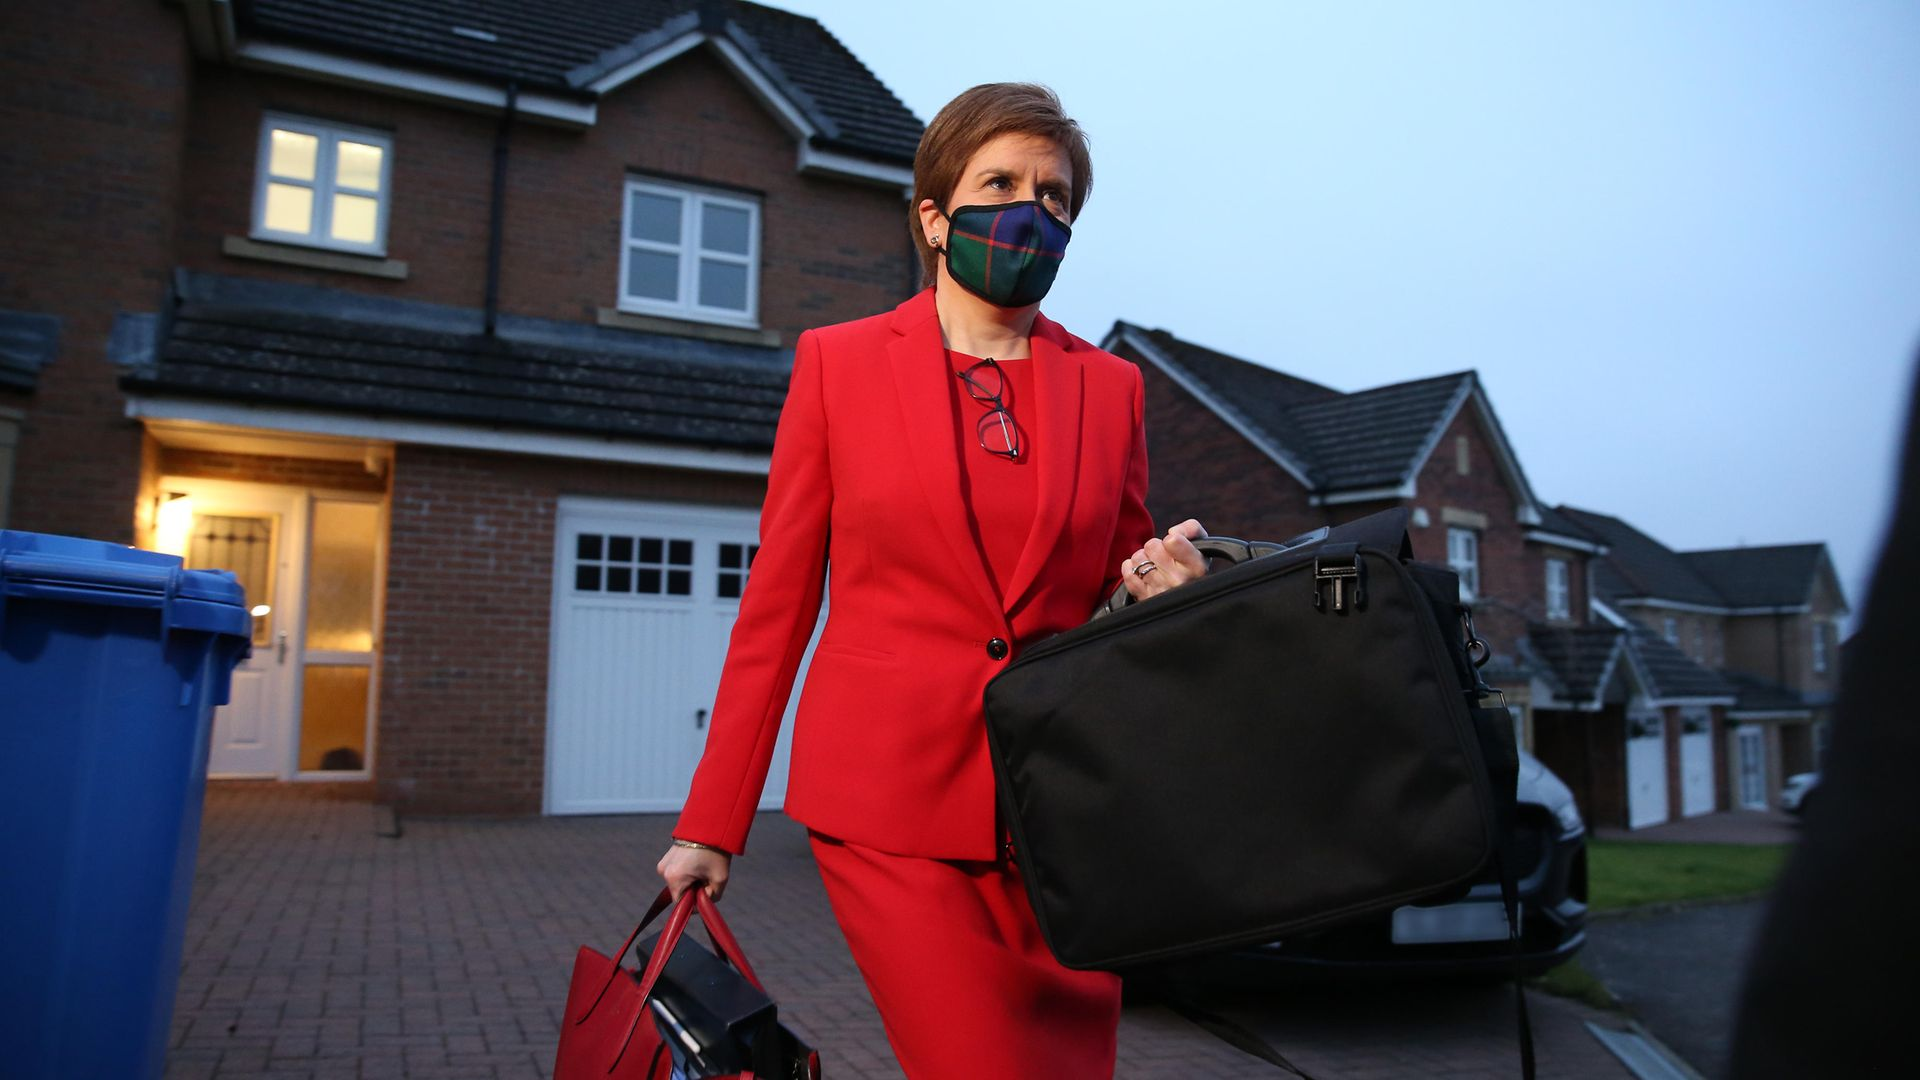 First minister of Scotland, Nicola Sturgeon, leaves her home in Glasgow to head to Holyrood in Edinburgh to give evidence to the Scottish parliament's inquiry into her government's unlawful investigation of the former first minister Alex Salmond - Credit: PA